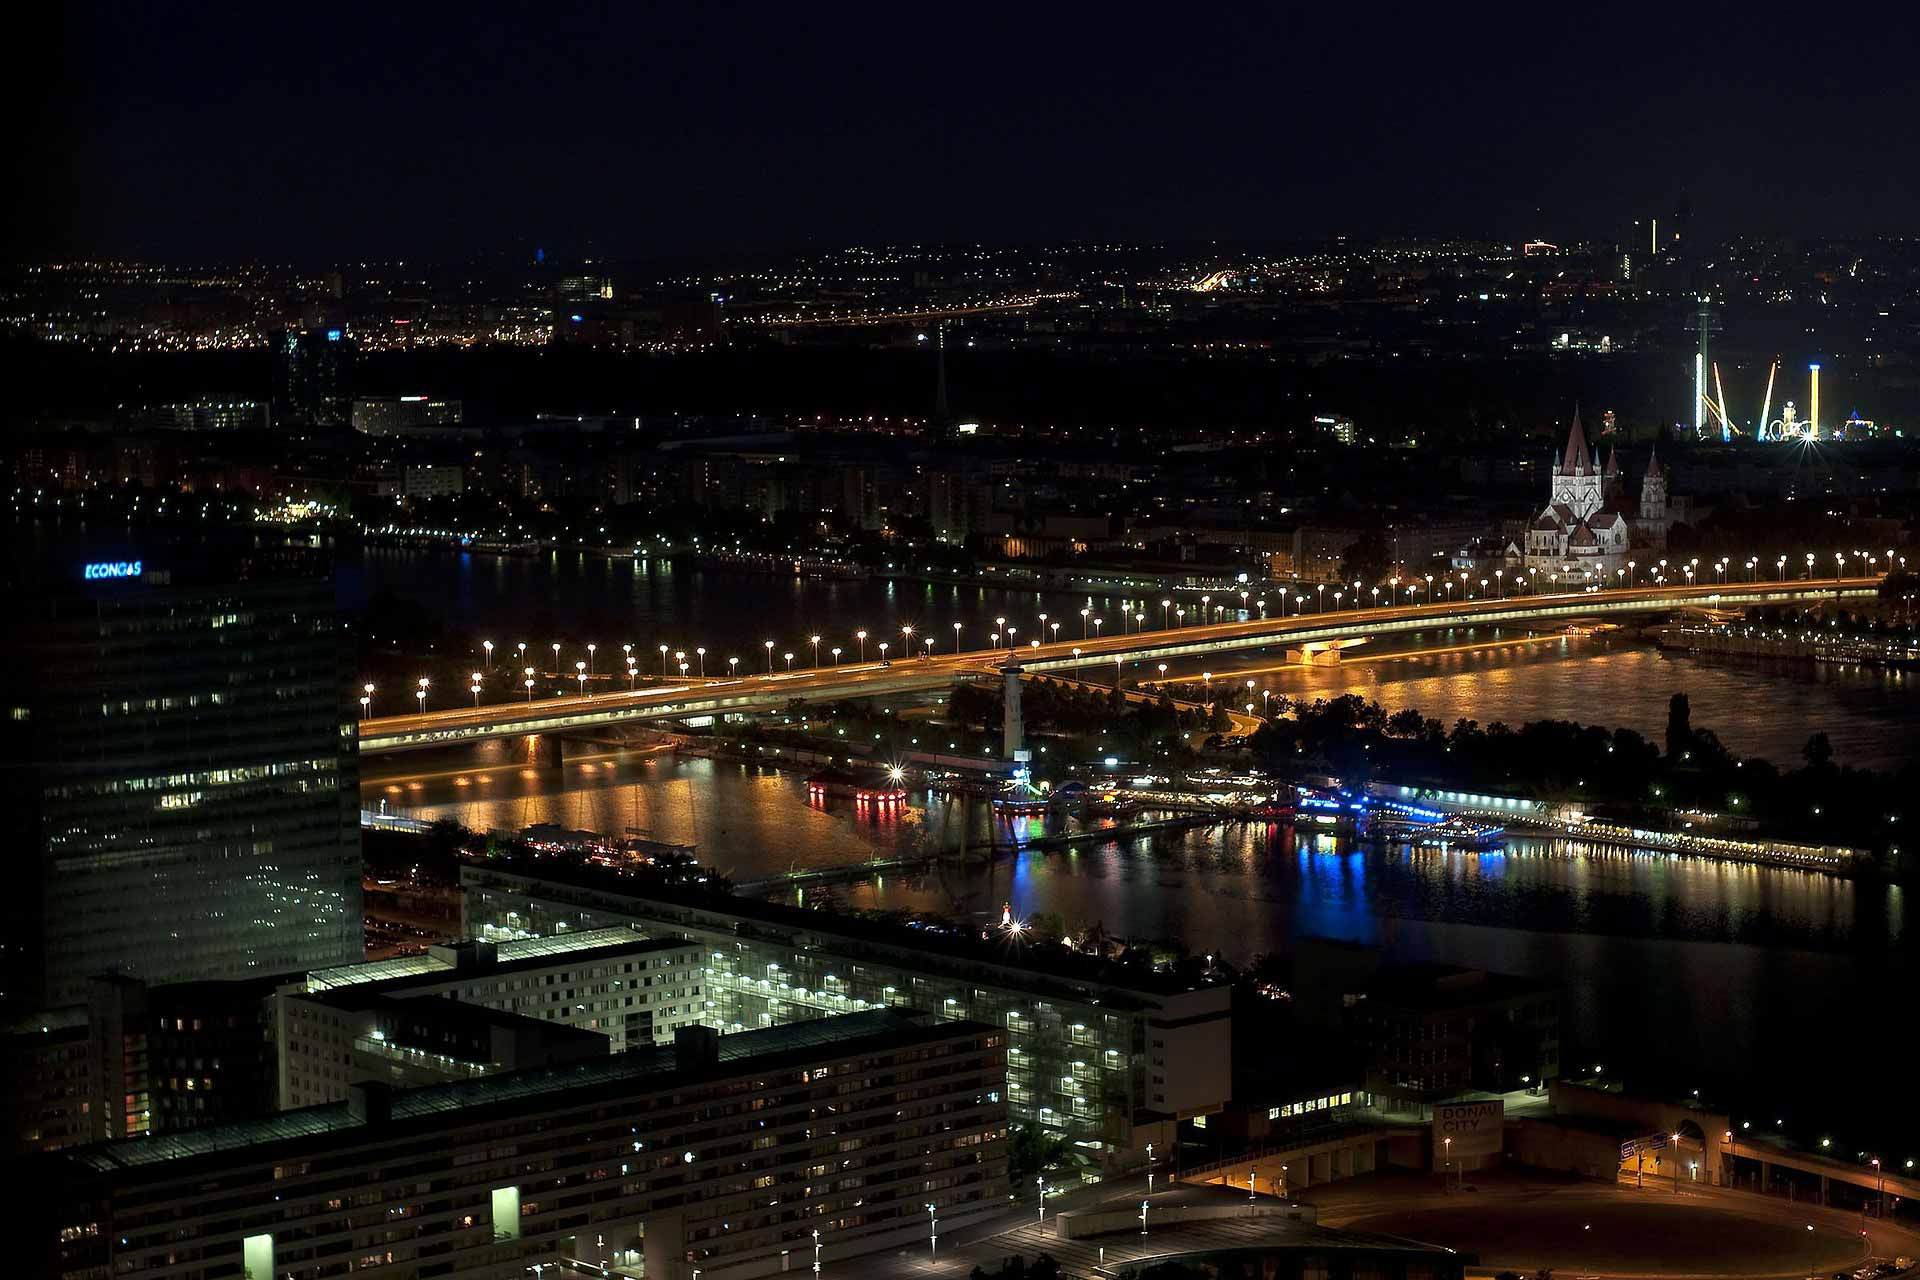 Empire bridge Vienna